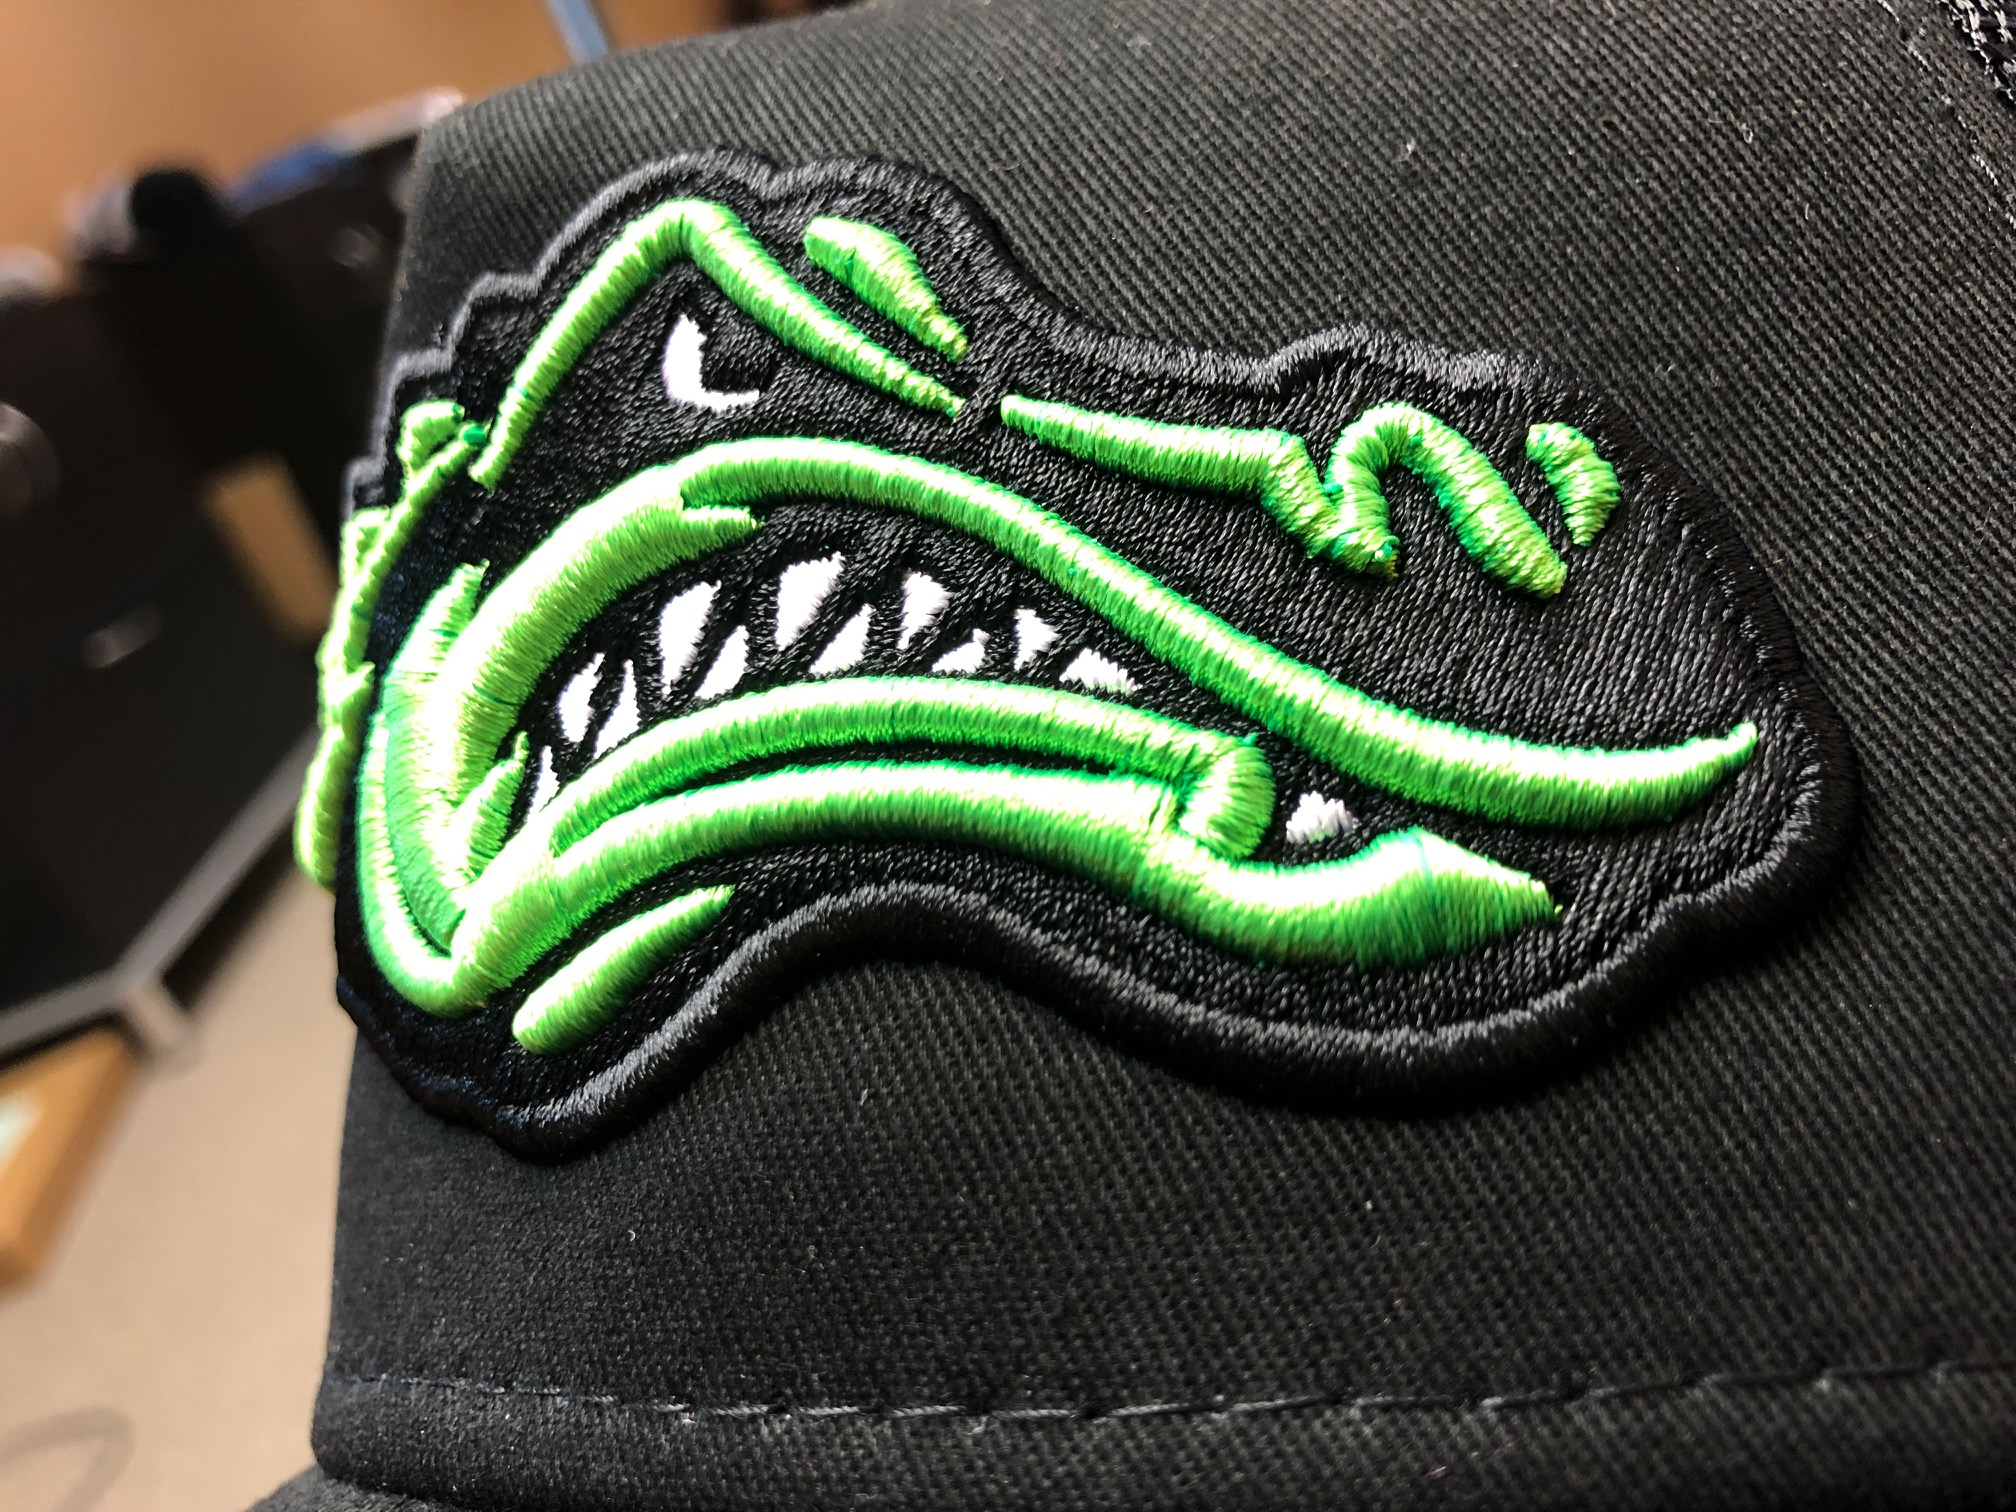 logounltd_laser_etching_embroidery_screen_printing_apparel_uniform_custom_tshirts_kirkland_bellevue_seattle_redmond_woodinville_branded_merchandise_promotional_products_logo_unltd_green_river_college_hat (8).jpg